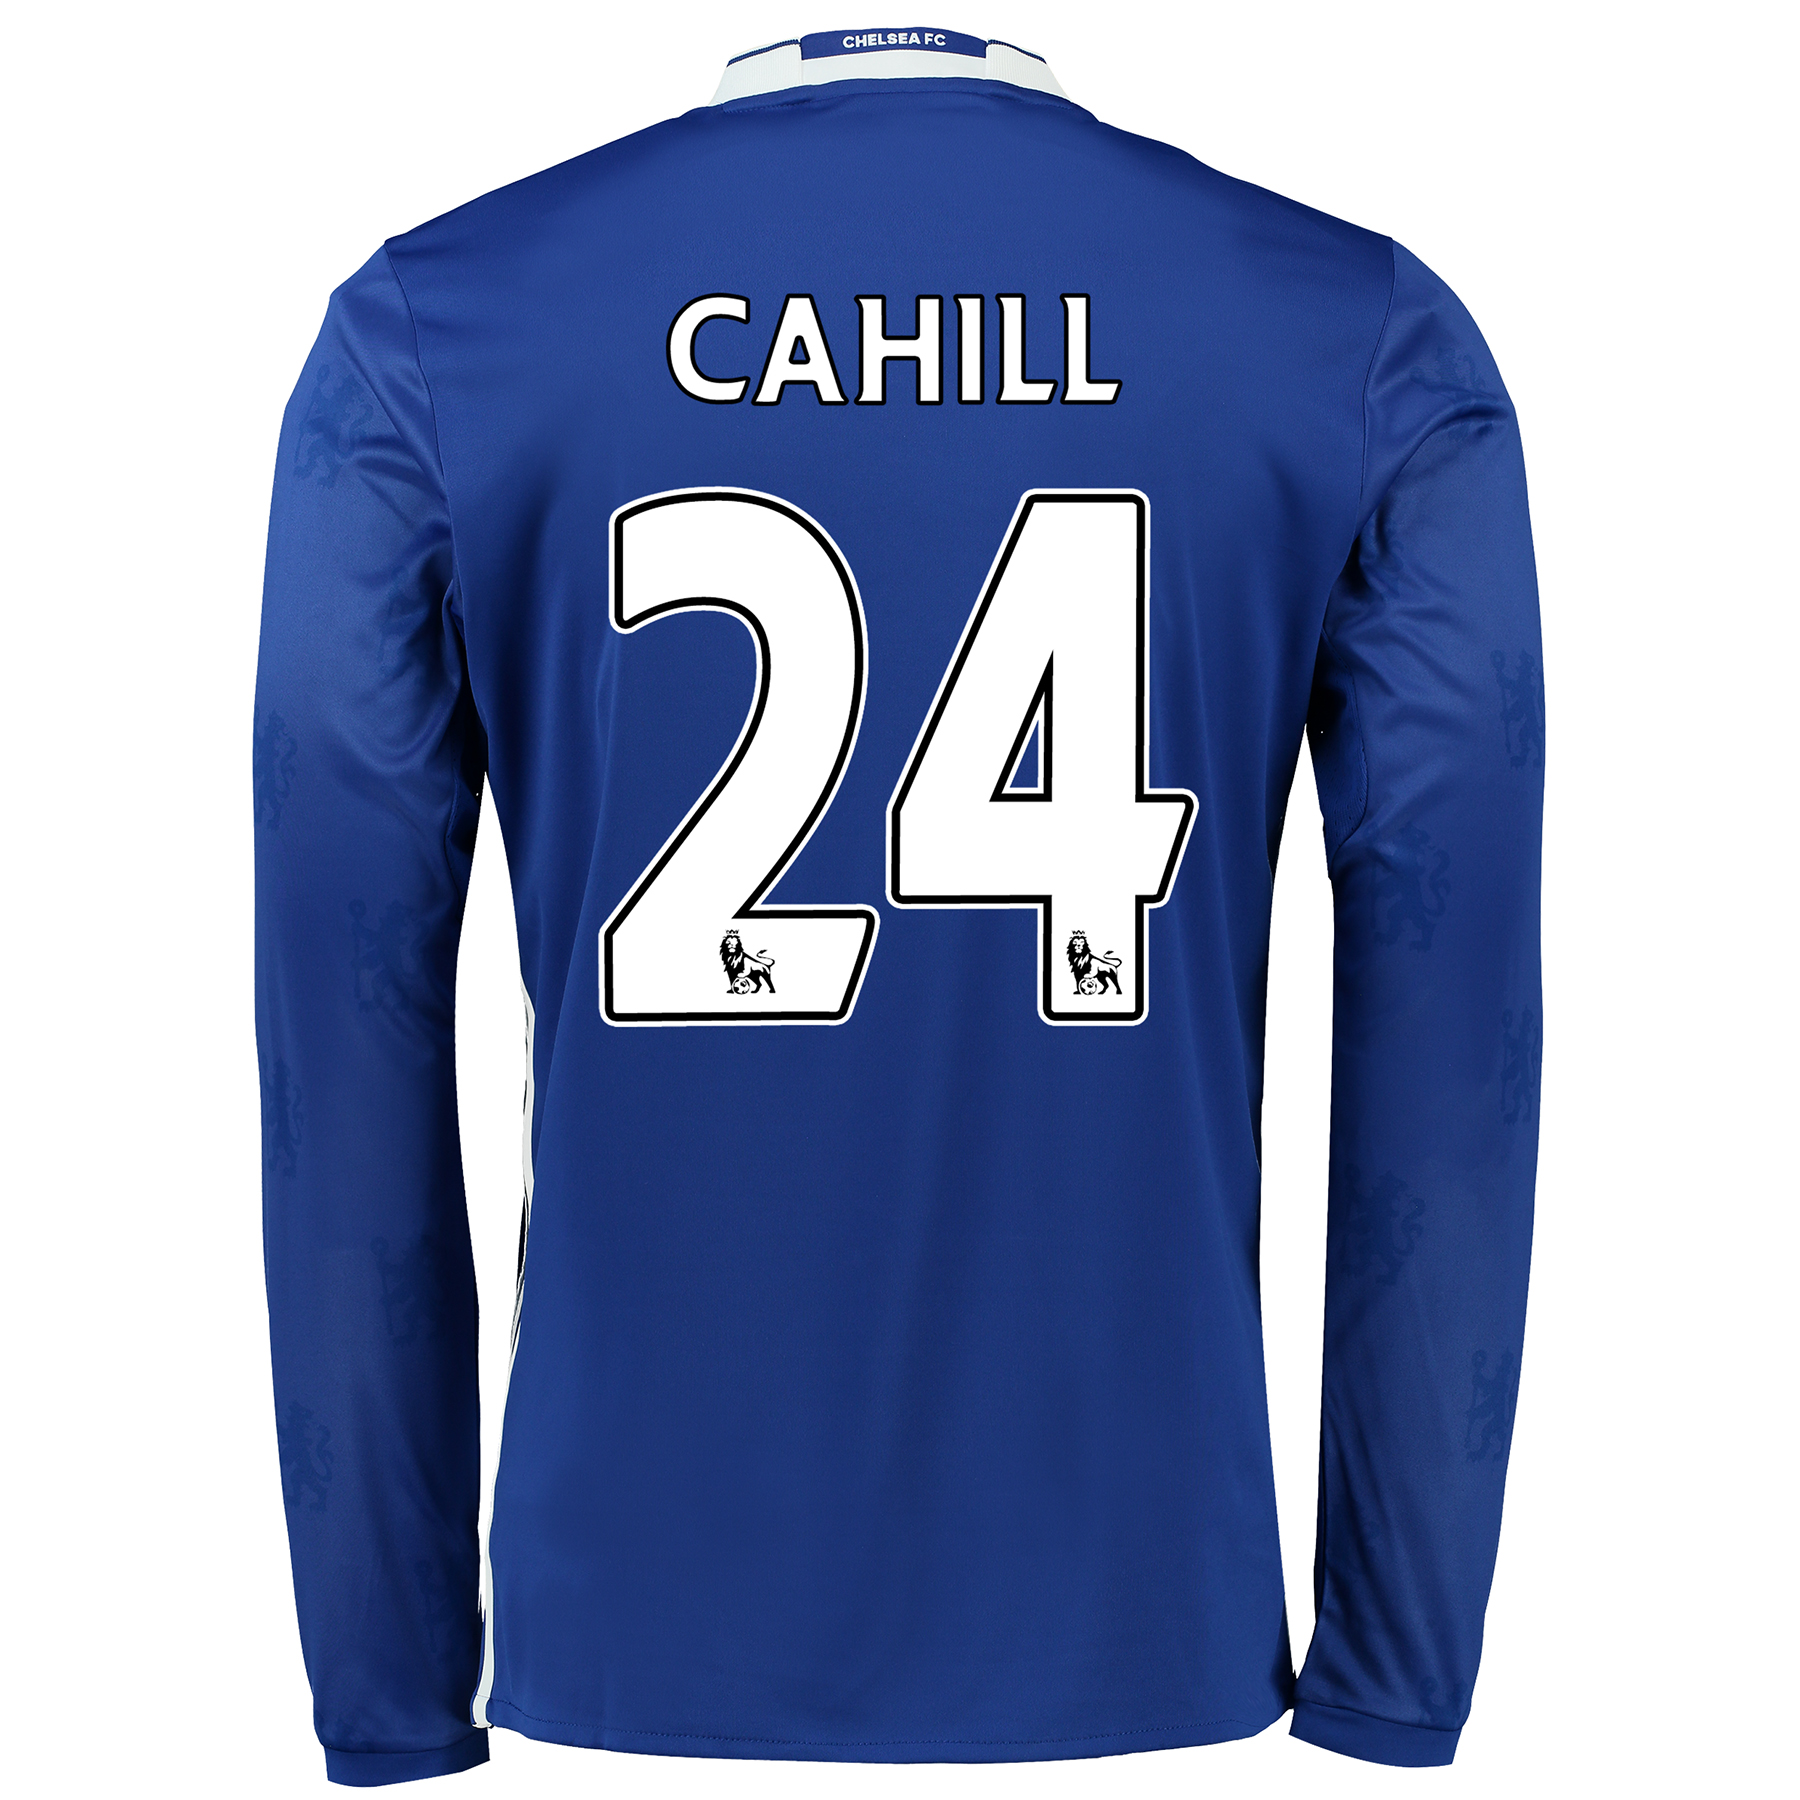 Chelsea Home Shirt 2016-17 - Kids - Long Sleeve with Cahill 24 printin